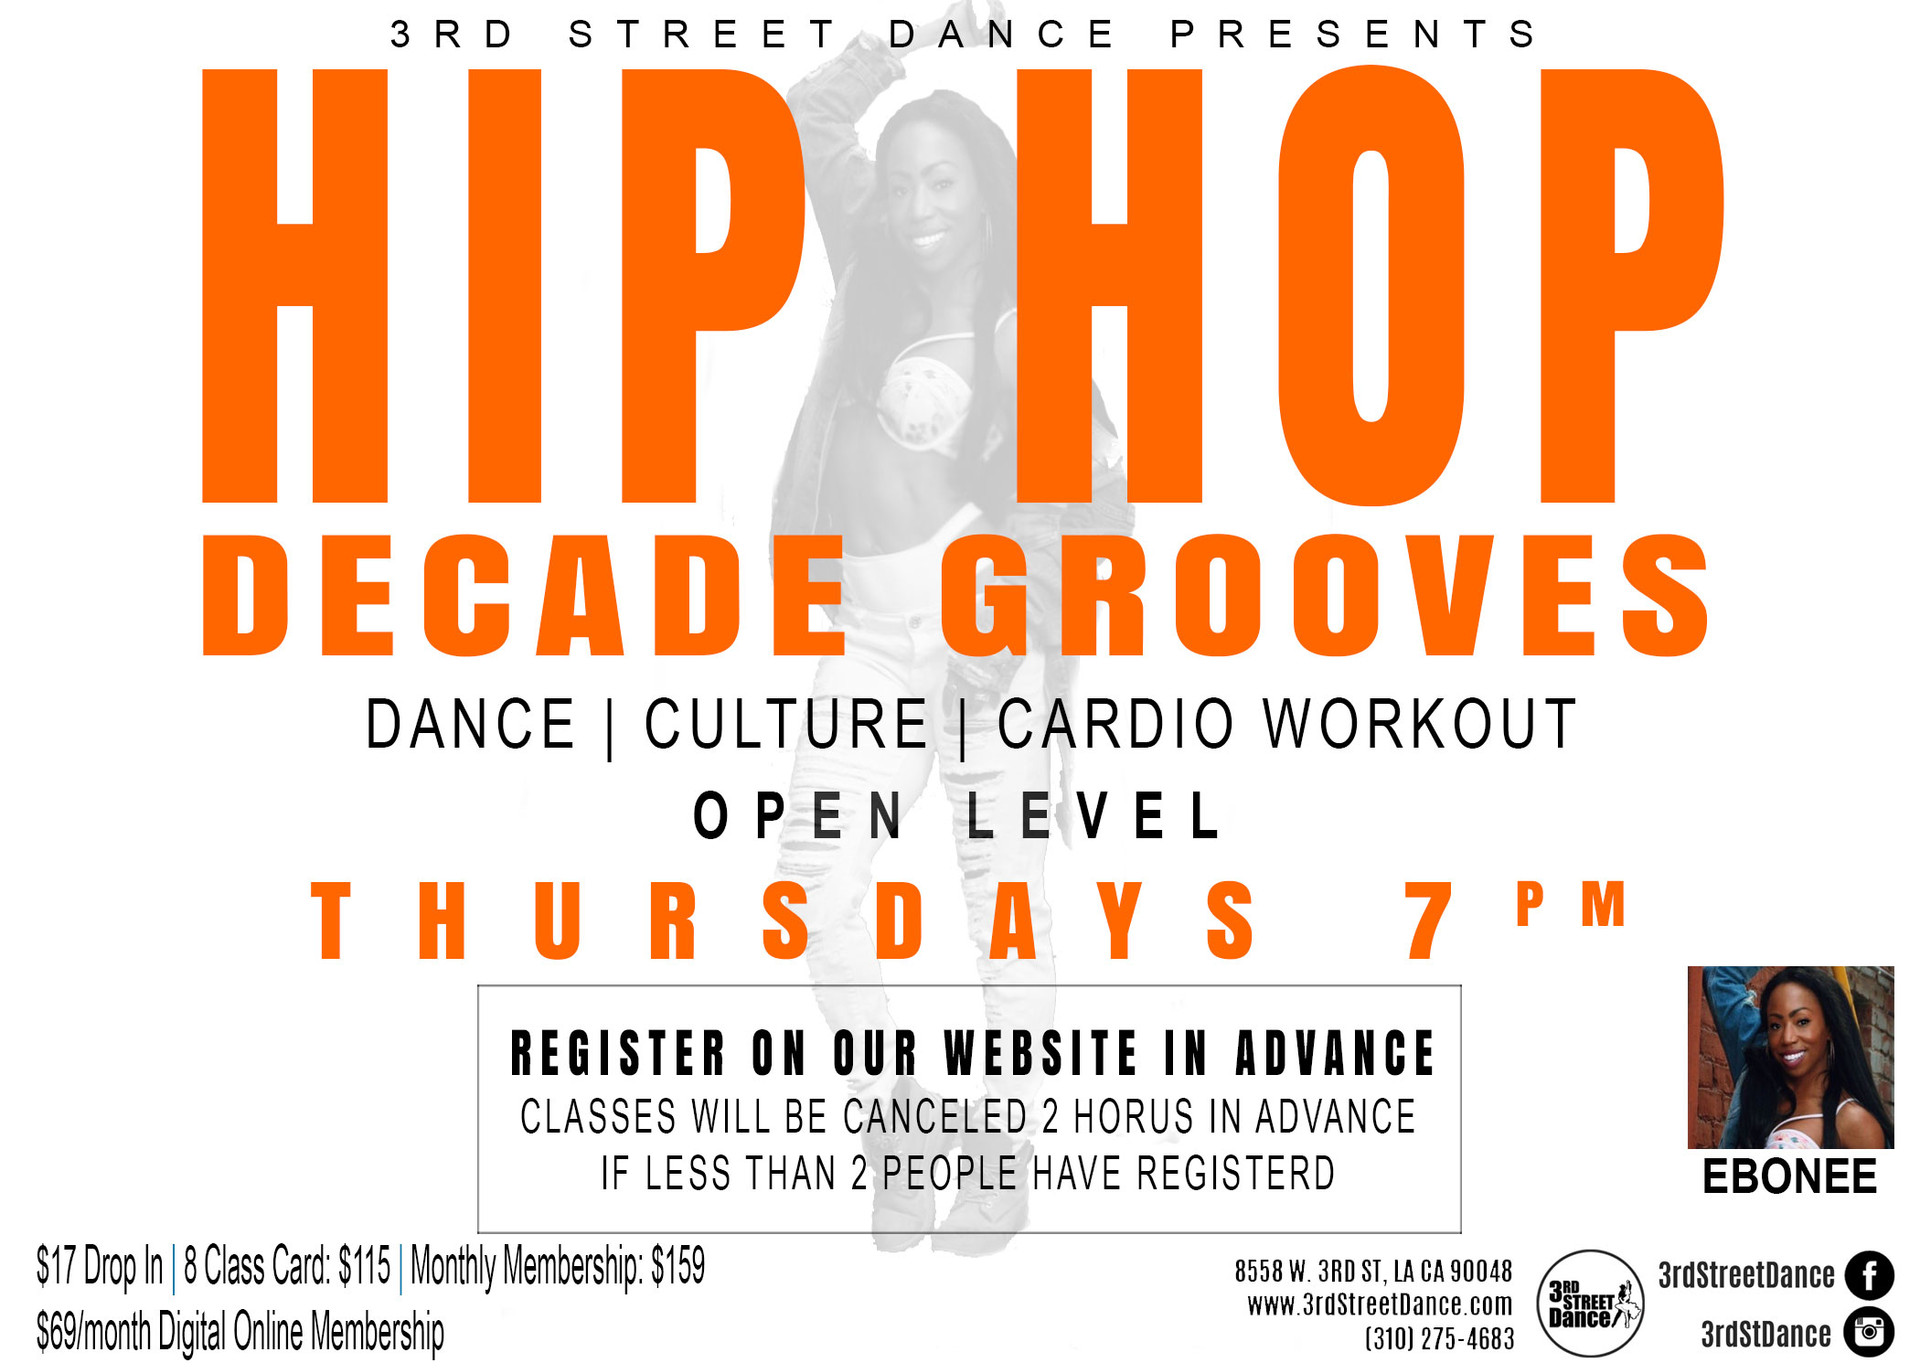 This Beginner friendly class is set to today's Top Hits! It is the perfect start to learning this popular street dance! You'll learn the basics and in-demand freestyle moves to take your dancing to the next level.